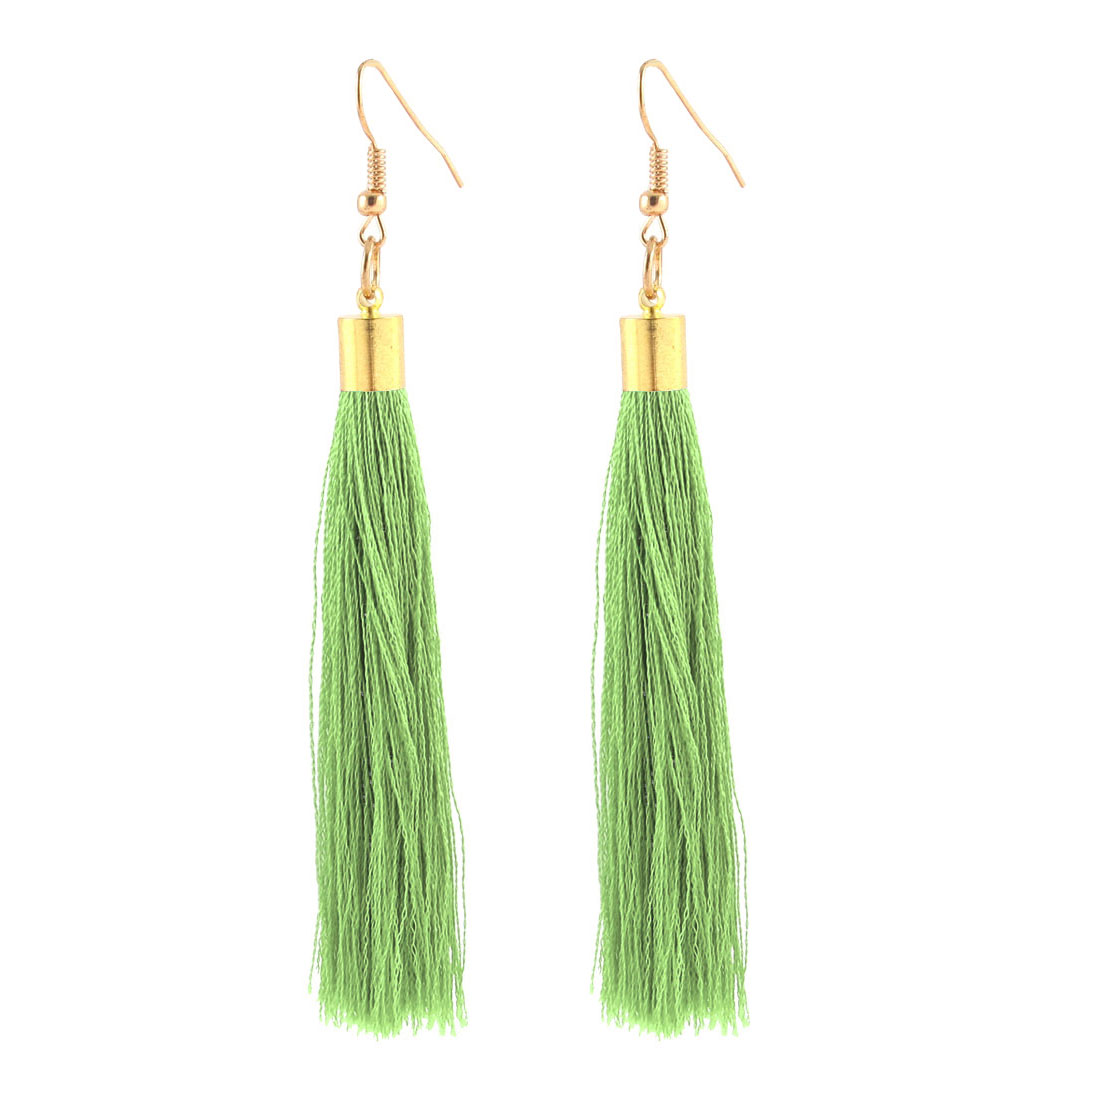 Fish Hook Dangle Nylon Tassel Earrings Ears Decoration Pair Green